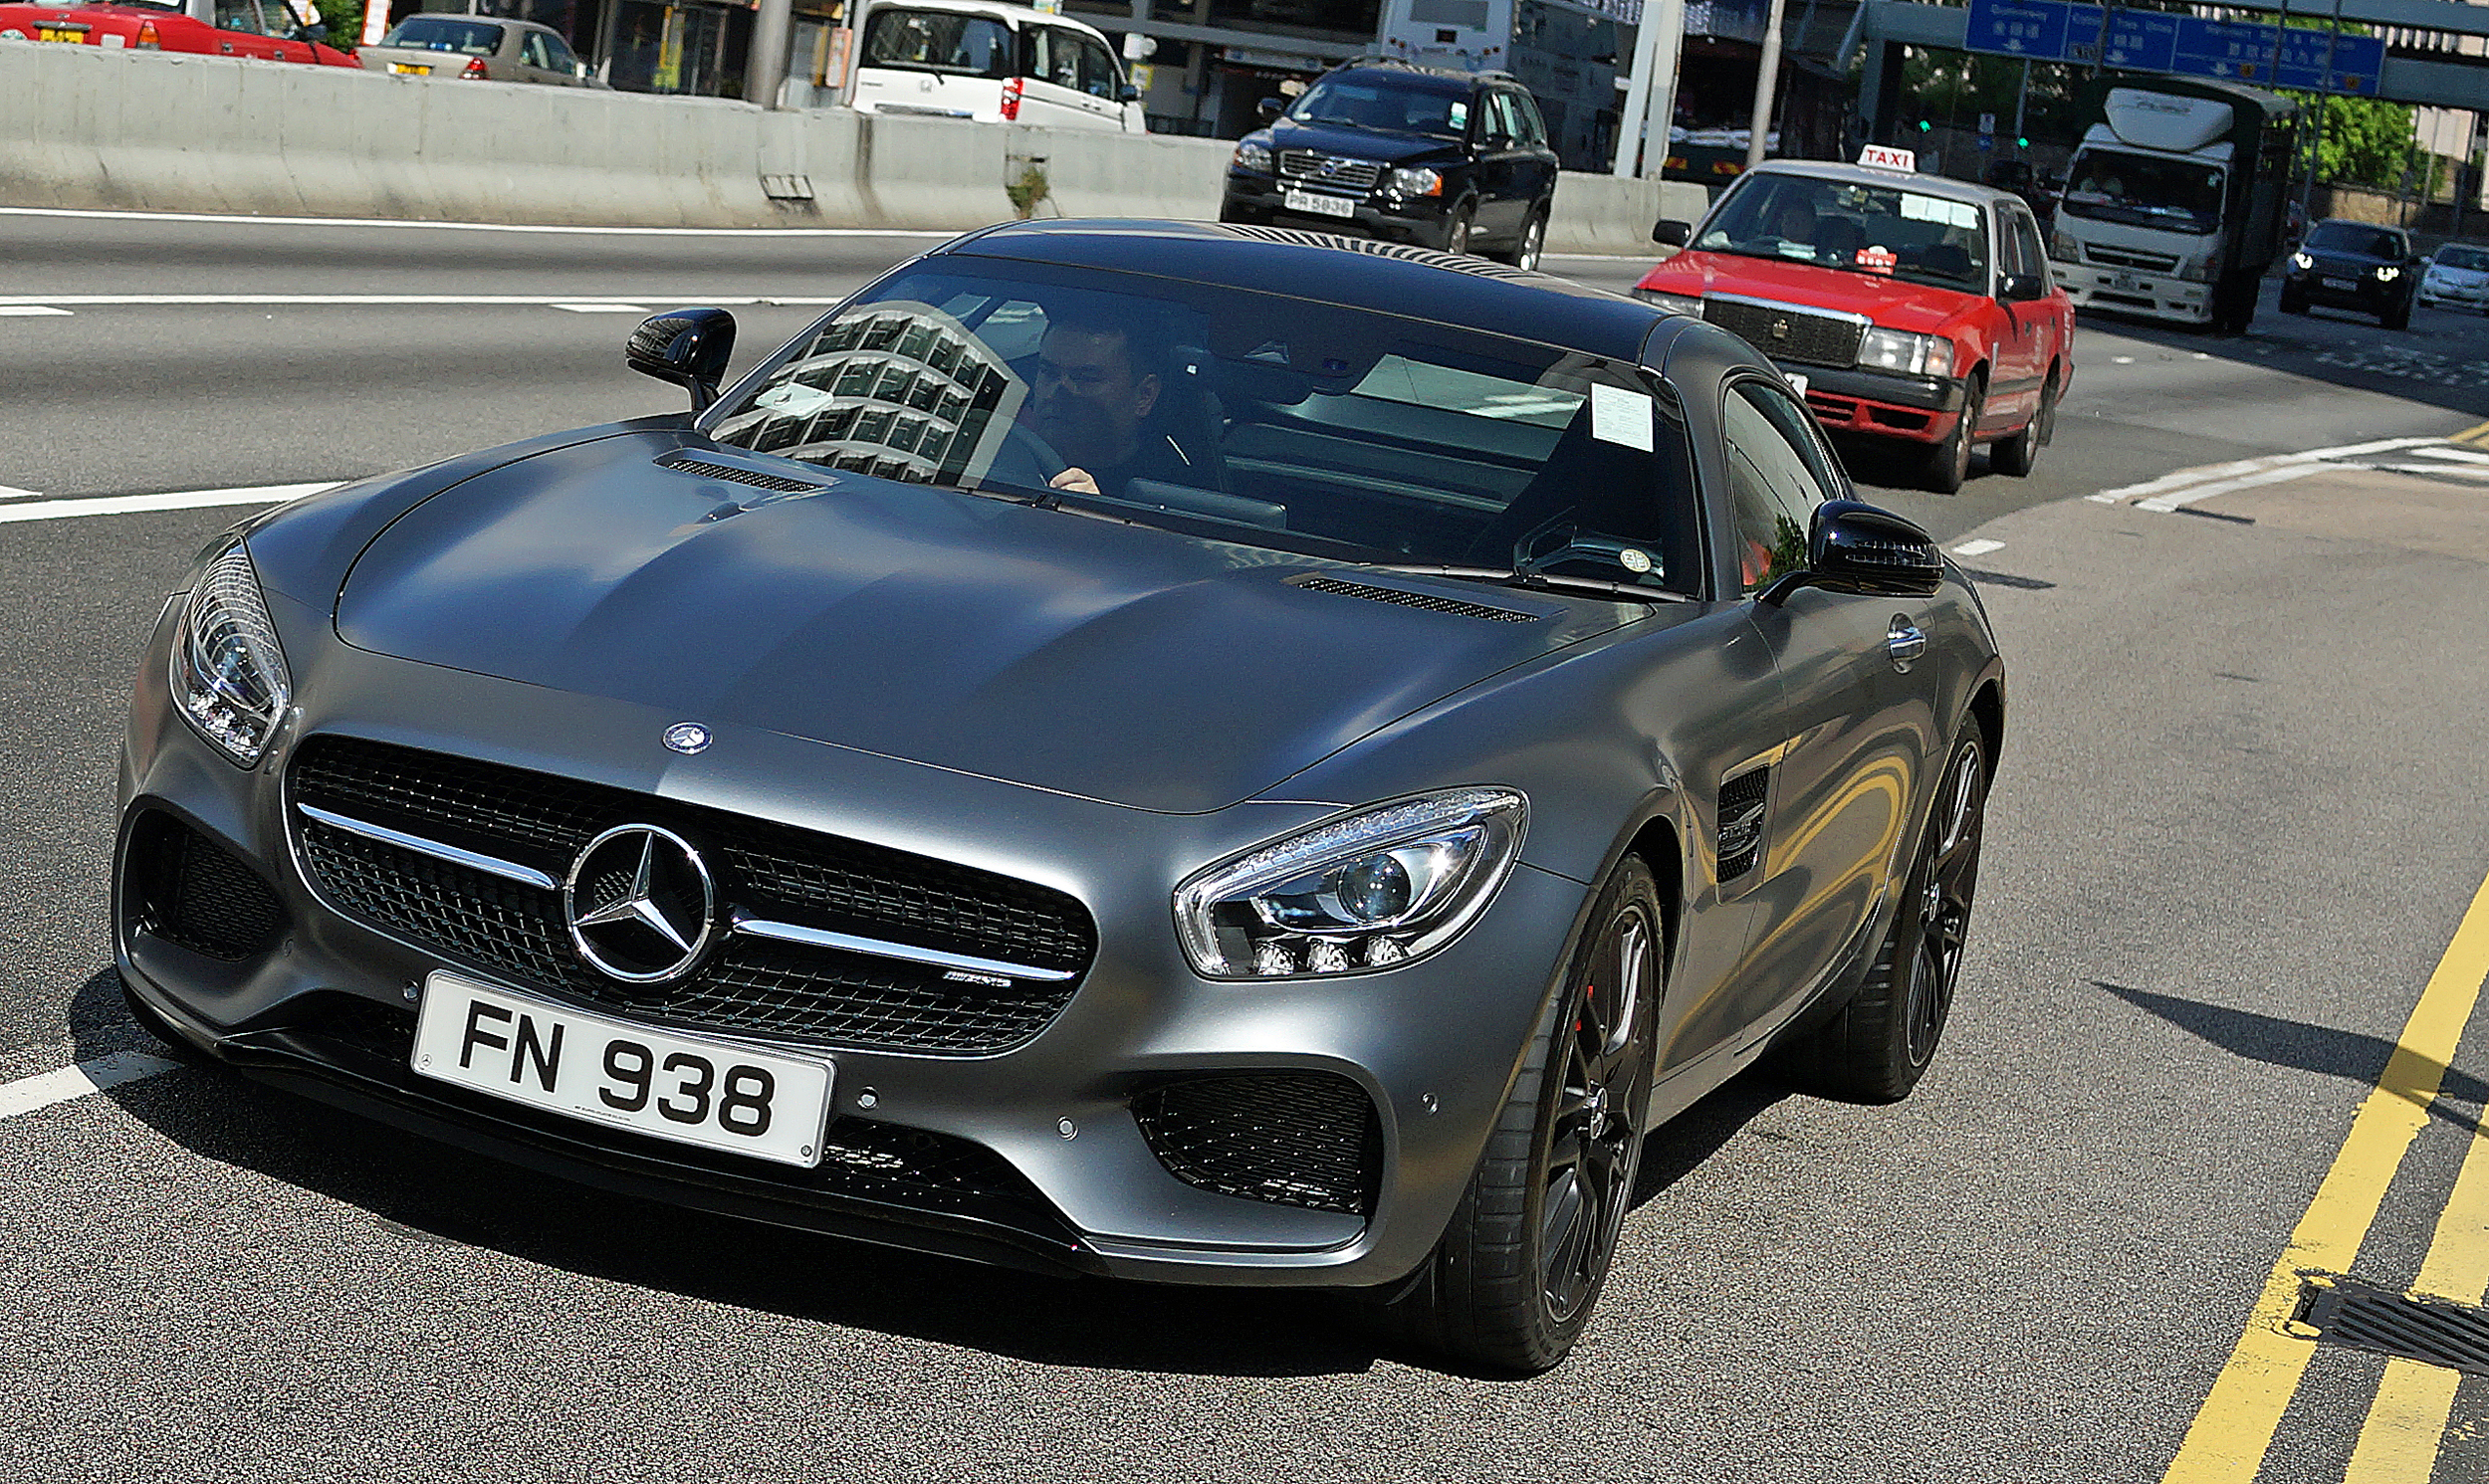 The amazing new Mercedes Benz AMG GT S